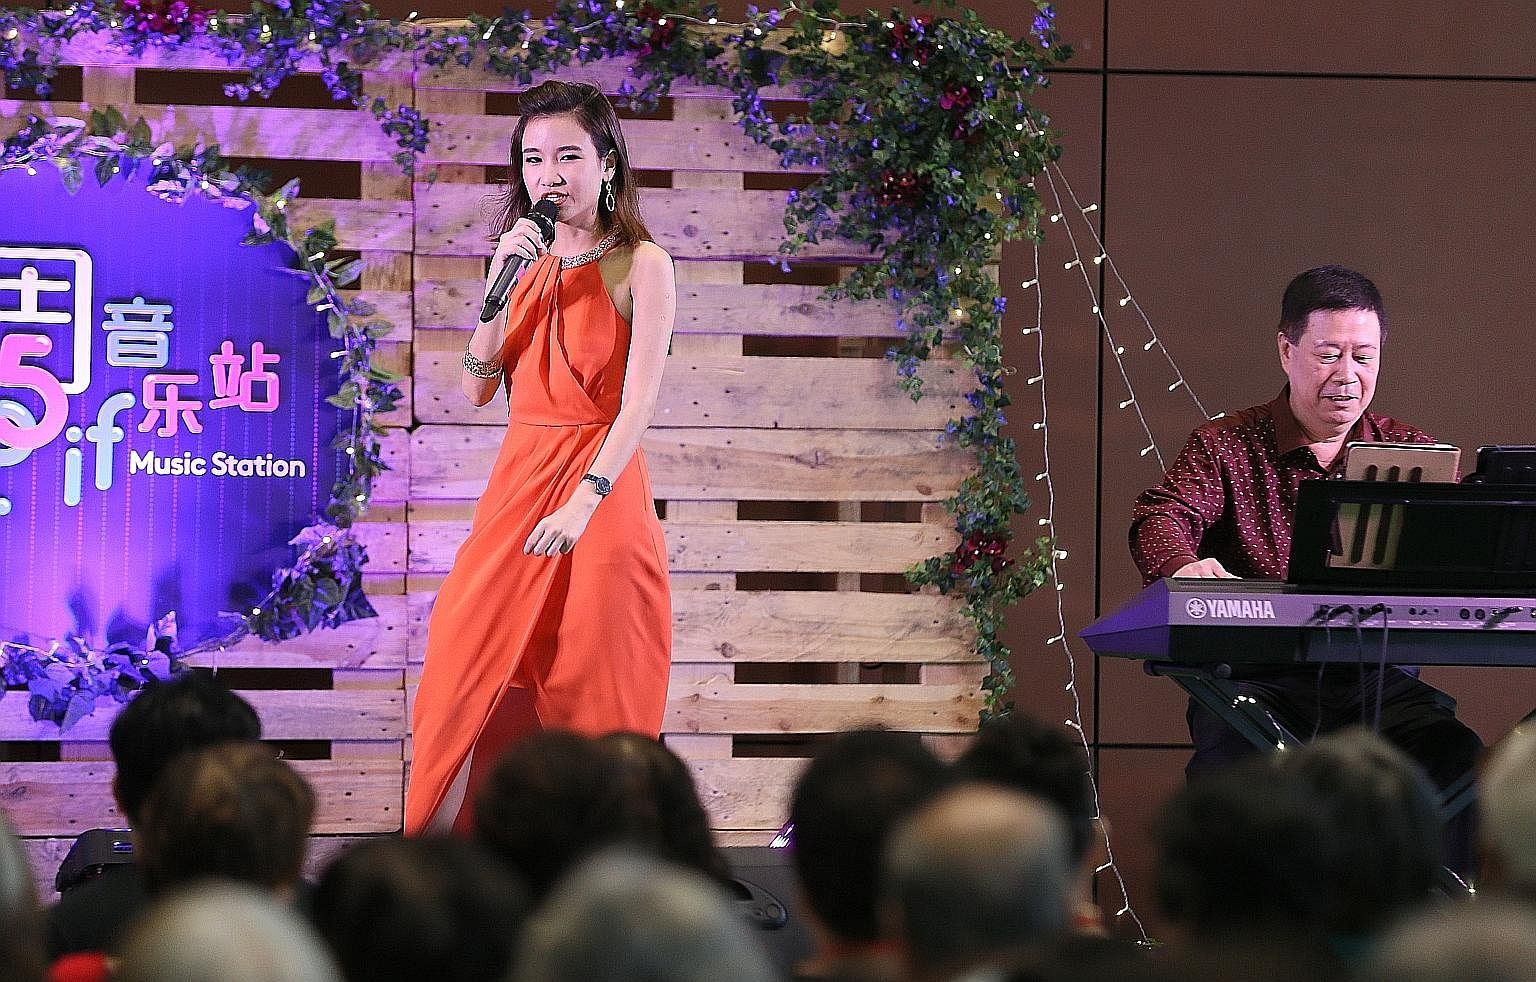 Getai singer Lee Pei Fen performing at the first showcase of the Singapore Chinese Cultural Centre's new TGIF Music Station initiative.